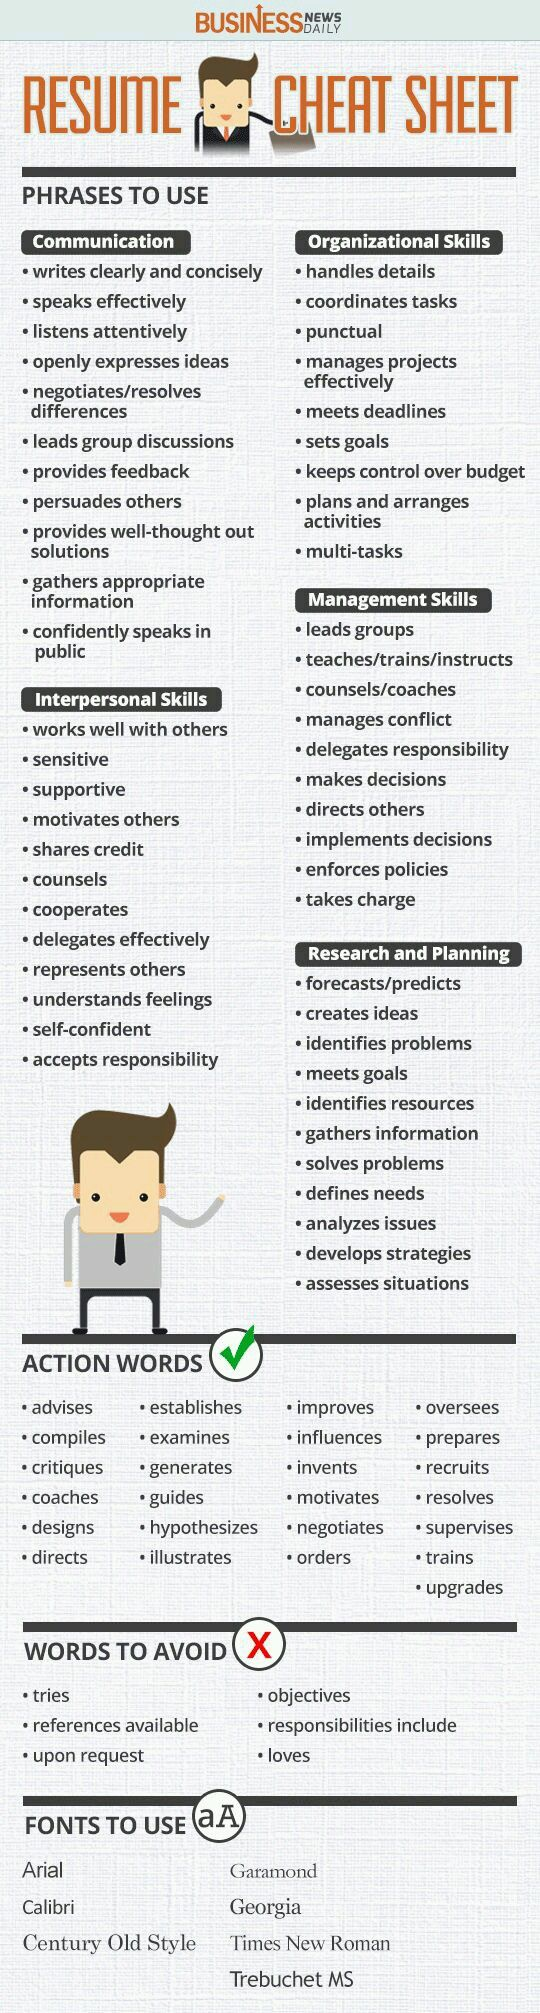 86 best Resume Writing images on Pinterest | Resume tips, Gym and ...